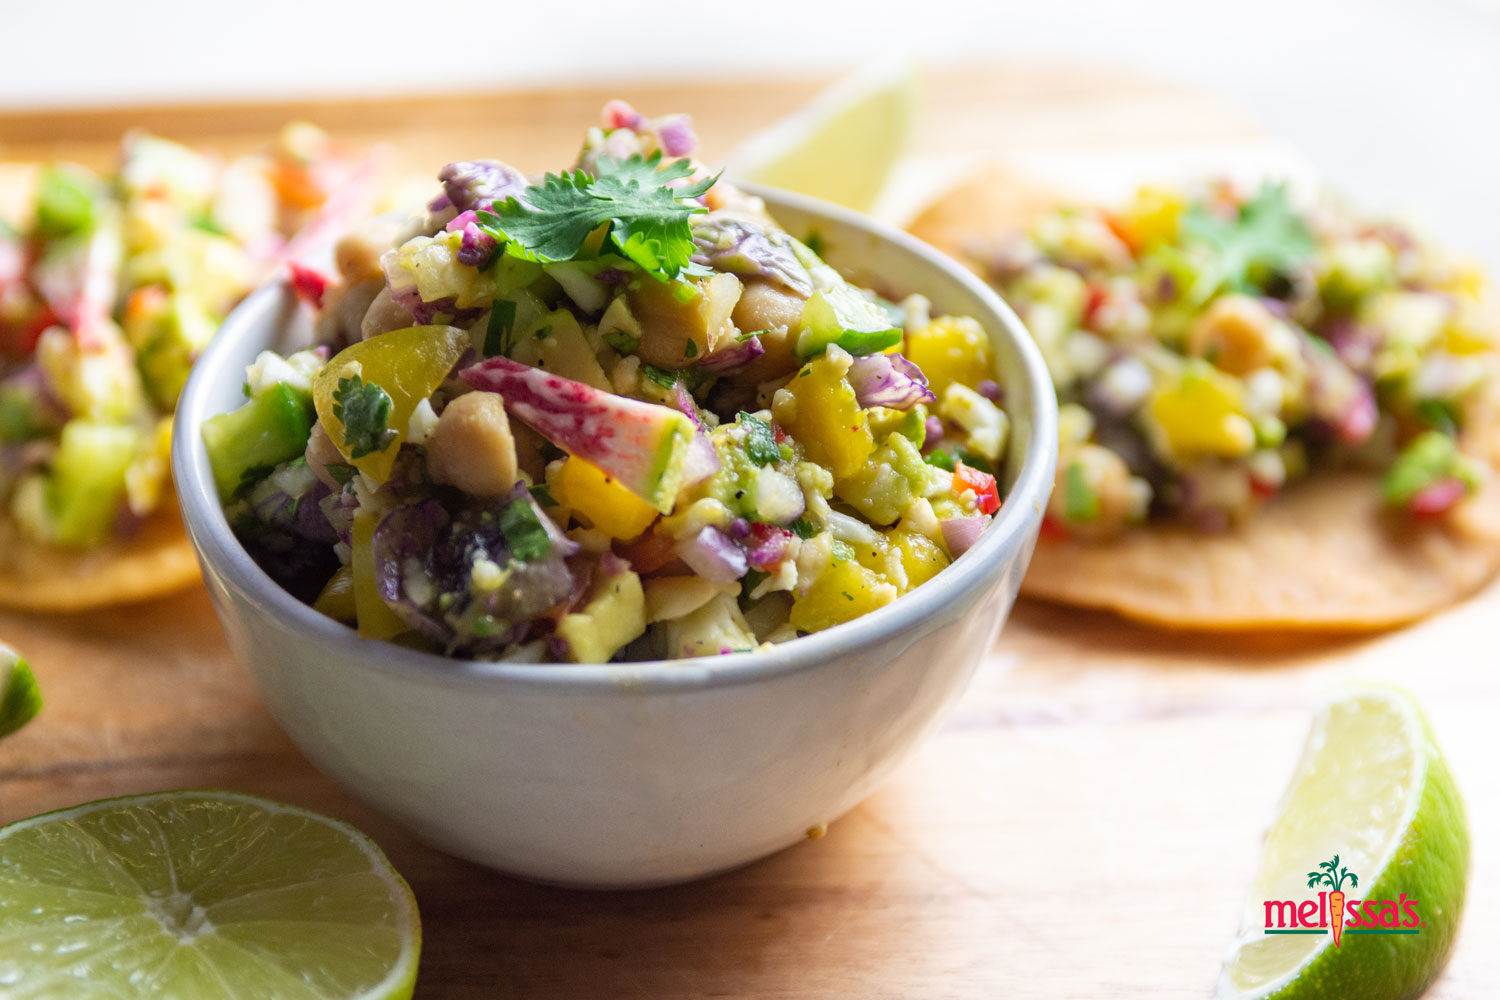 meatless ceviche